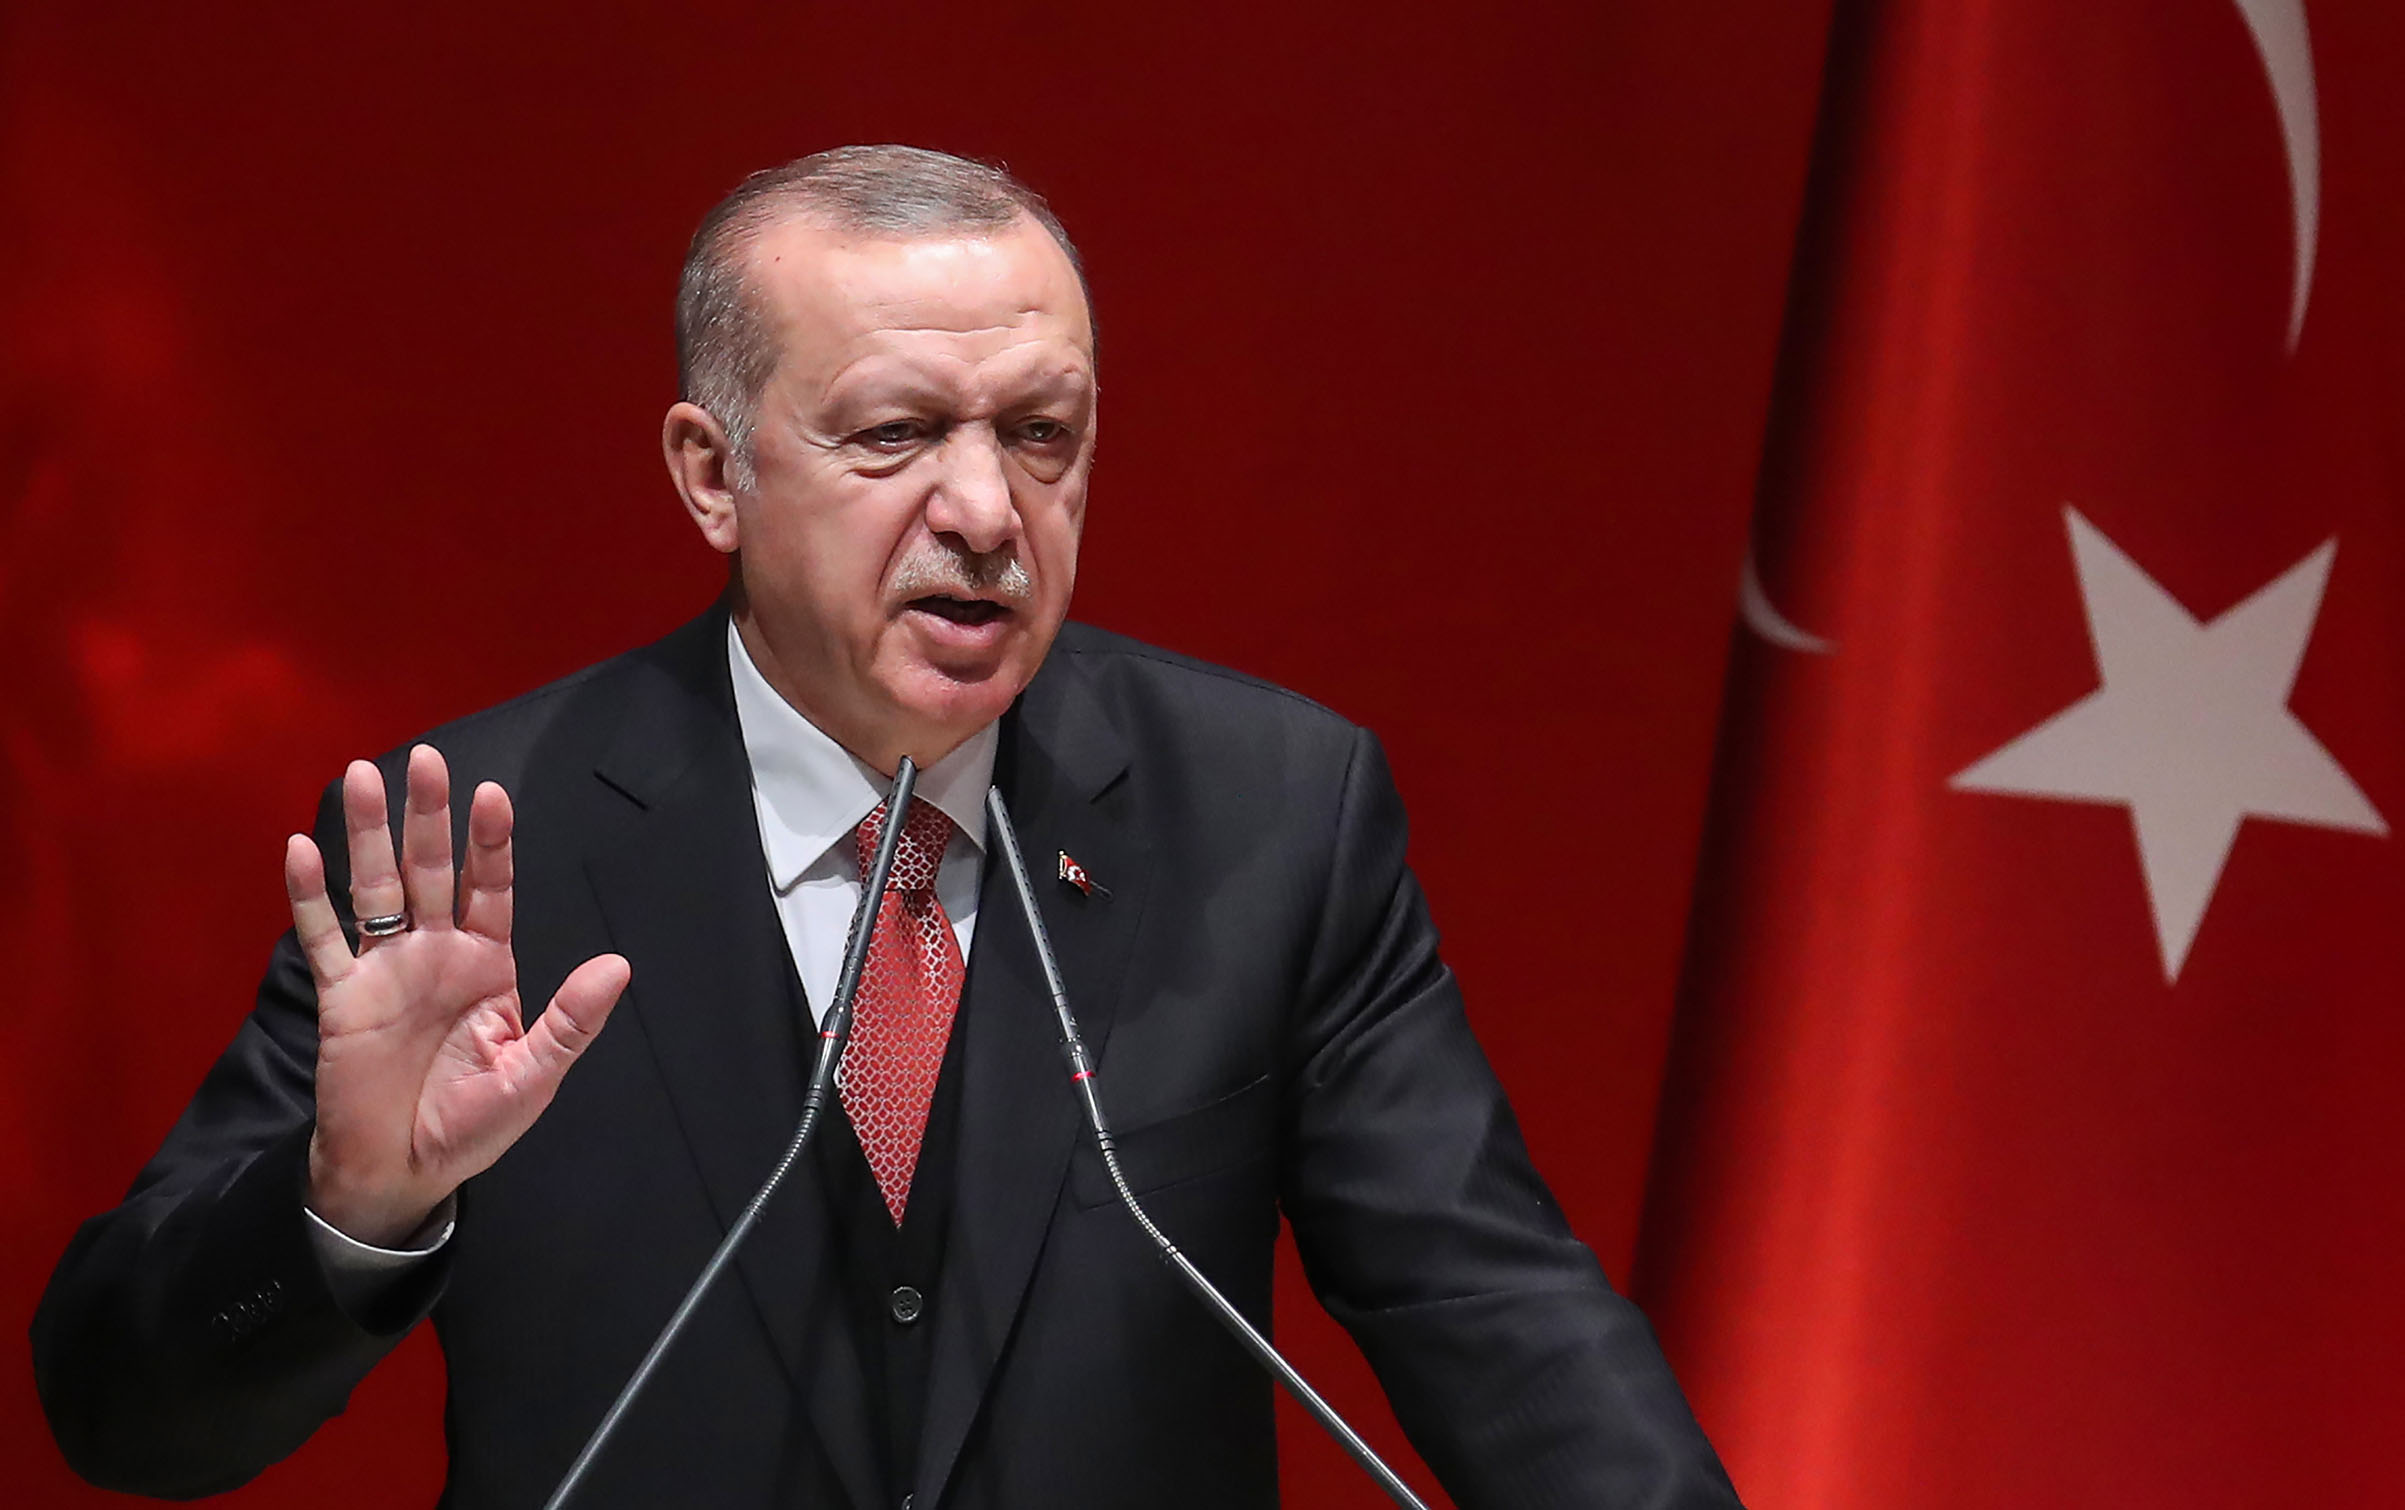 2,000 Kurdish Fighters Are Supporting Armenian Forces In Nagorno-Karabakh: Erdogan